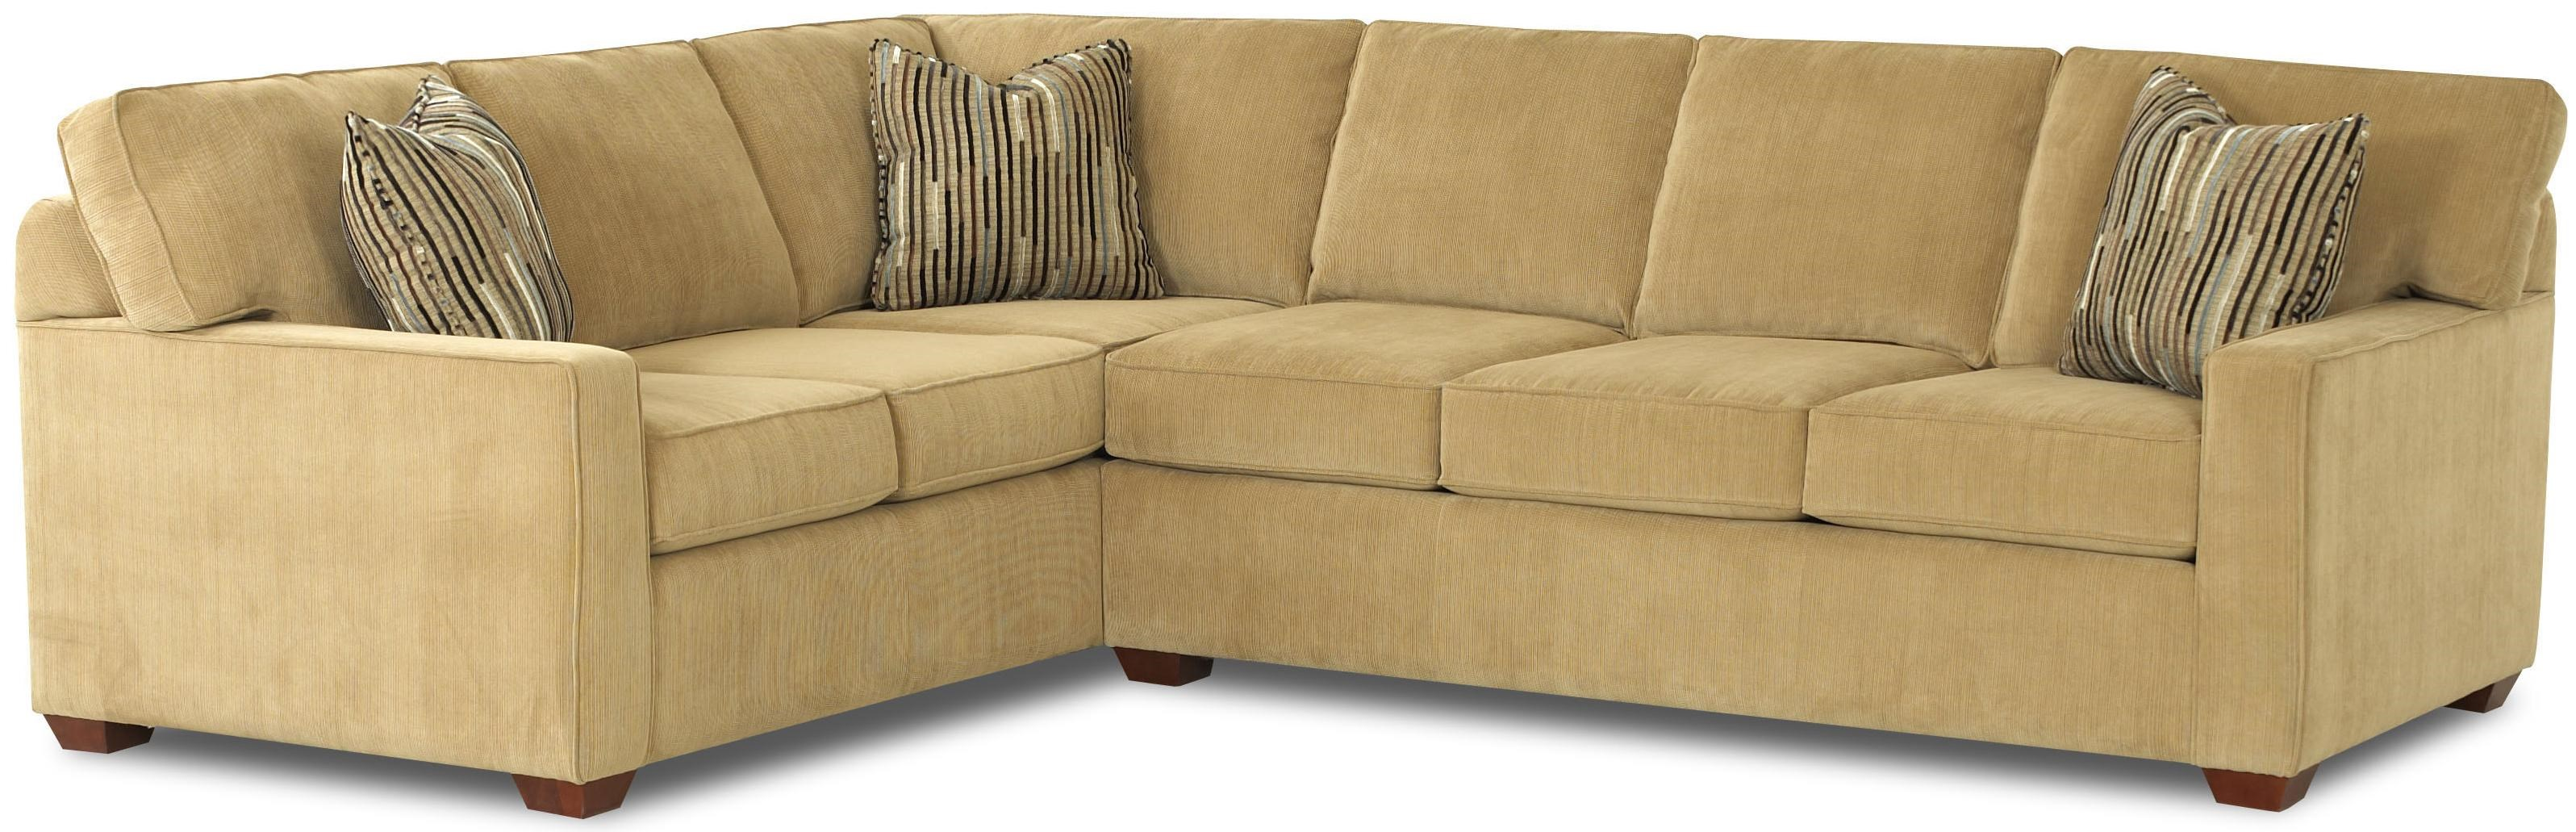 Klaussner Selection L-Shaped Contemporary Sectional  sc 1 st  Pilgrim Furniture City : klaussner sectional sofa - Sectionals, Sofas & Couches